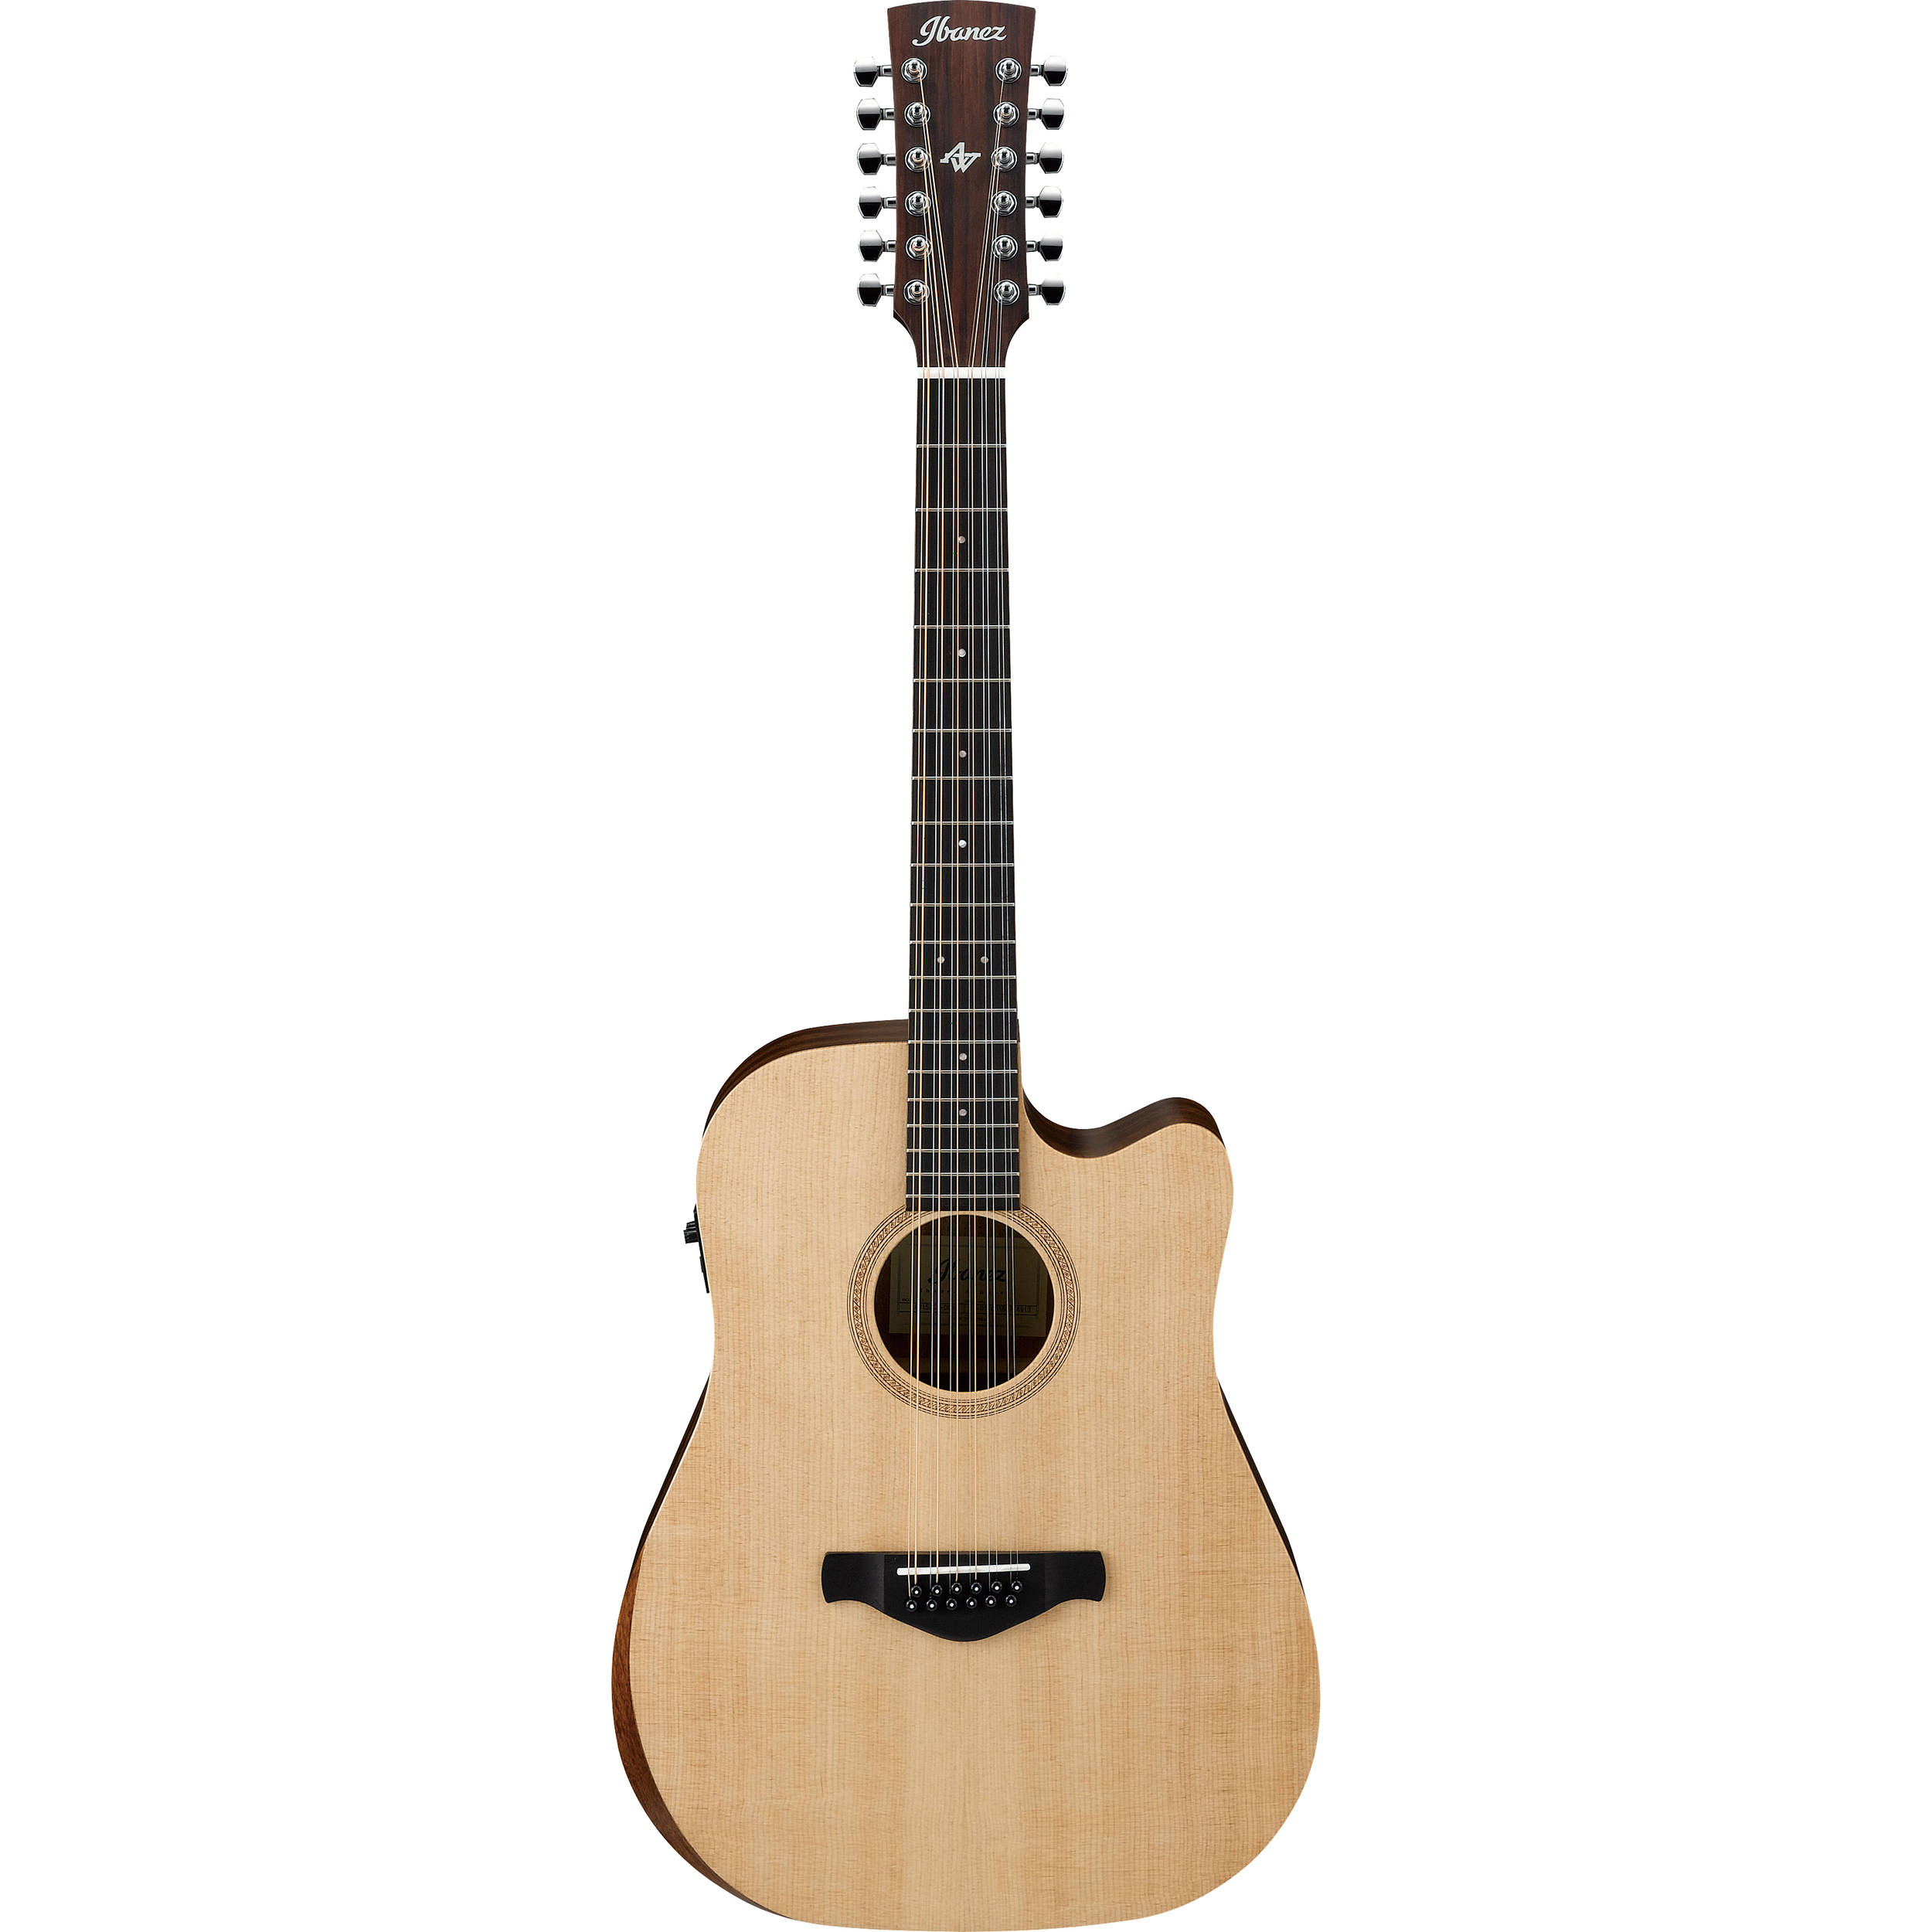 ibanez aw152ce artwood 12 string acoustic electric aw152ceopn. Black Bedroom Furniture Sets. Home Design Ideas